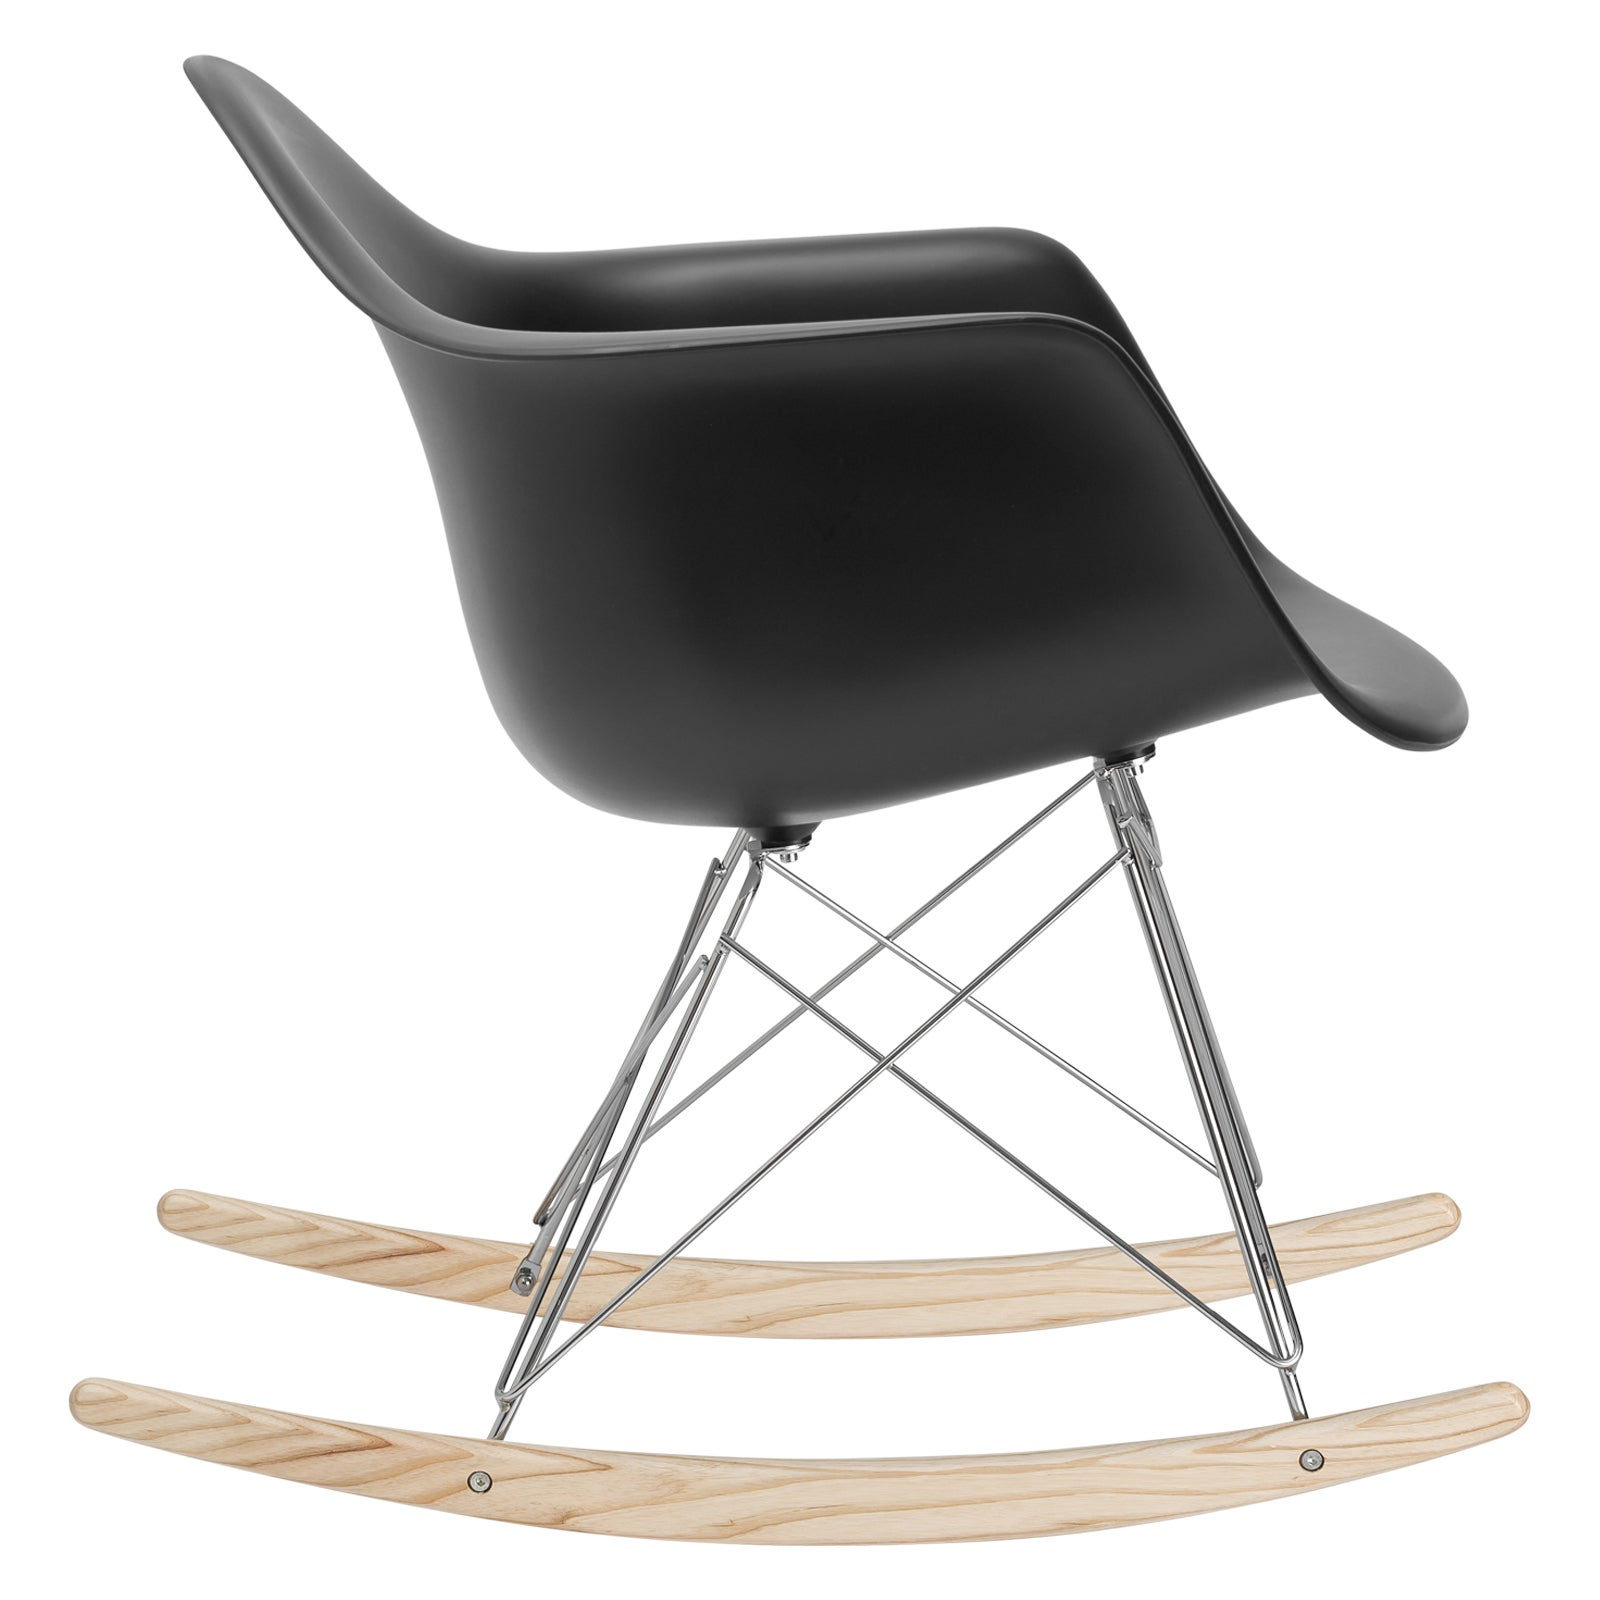 Inspiration about Poly And Bark Rocker Lounge Chair In Black Inside Poly And Bark Rocking Chairs Lounge Chairs In Black (#6 of 20)